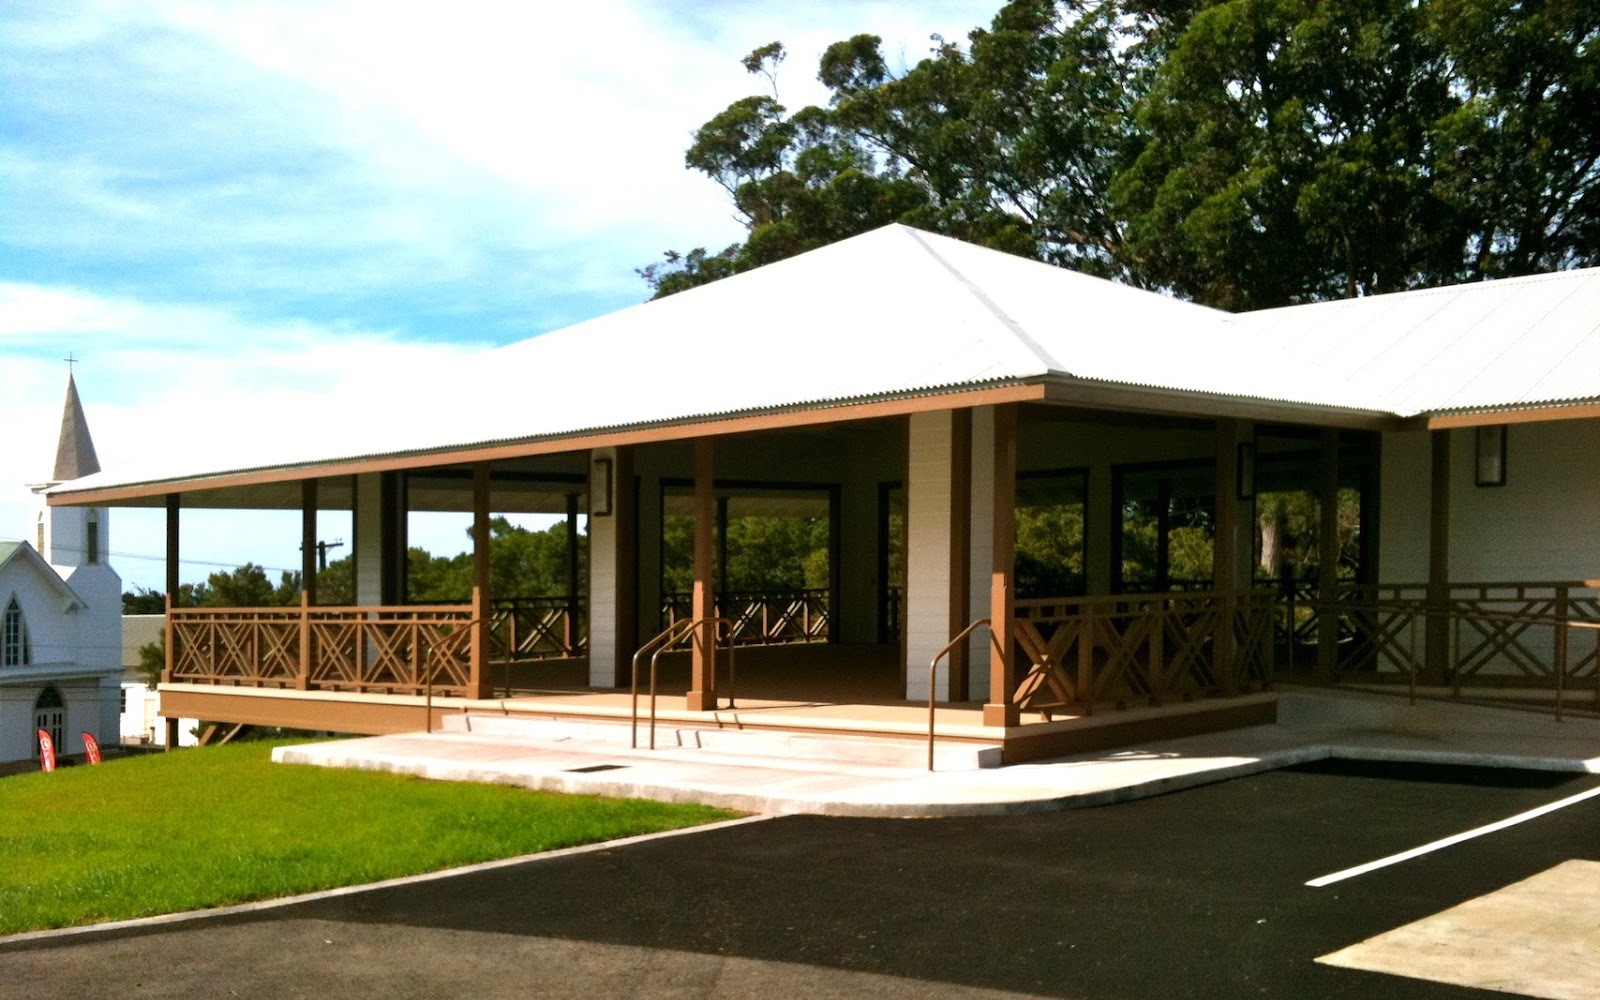 UH Hilo to transfer management of North Hawaiʻi education center to Hawaiʻi Community College